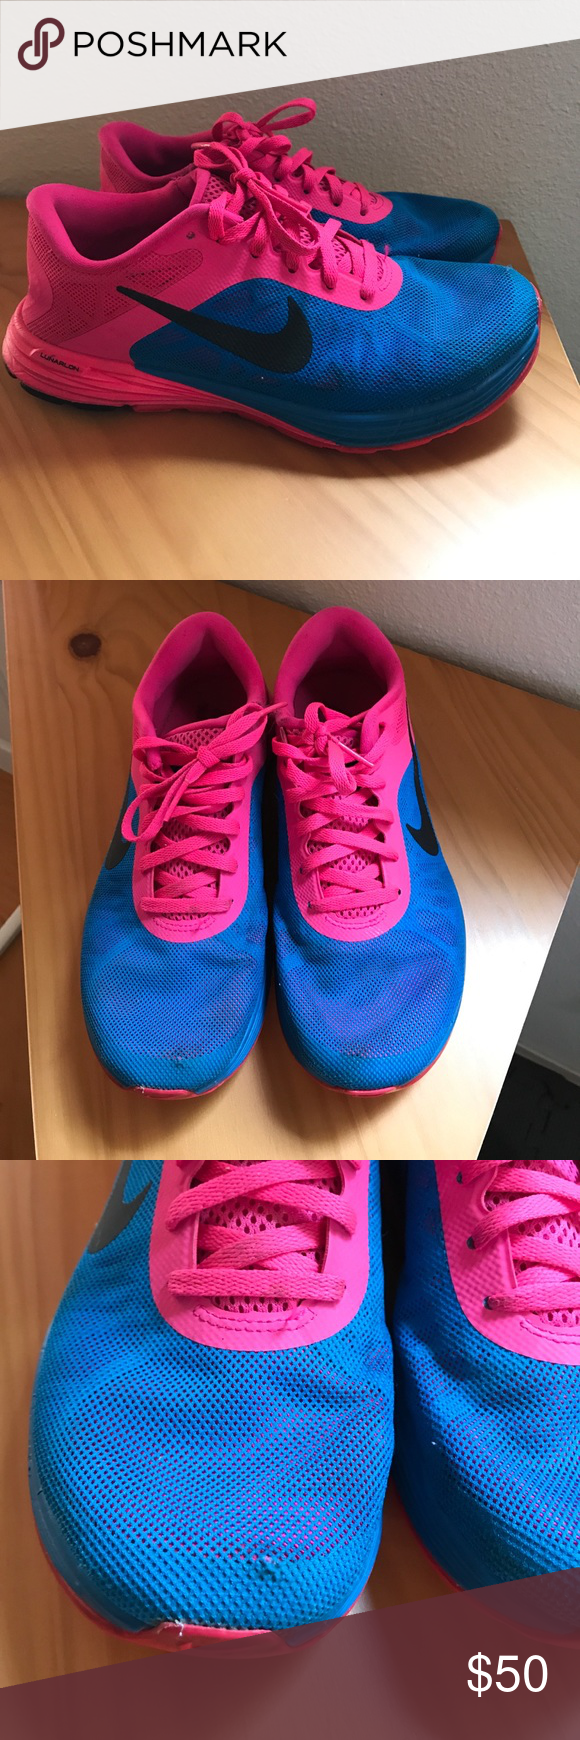 Nike LunarLaunch sneakers 👟 women's 7 Nike LunarLaunch shoes bright blue and pink. These have visible wear but they're definitely not worn out they still have lots of life left! The rubber on the souls is still very thick and intact it's mostly just some dirt spots. See pix!! Ask me questions?? Bundle! Make an offer! Nike Shoes Athletic Shoes